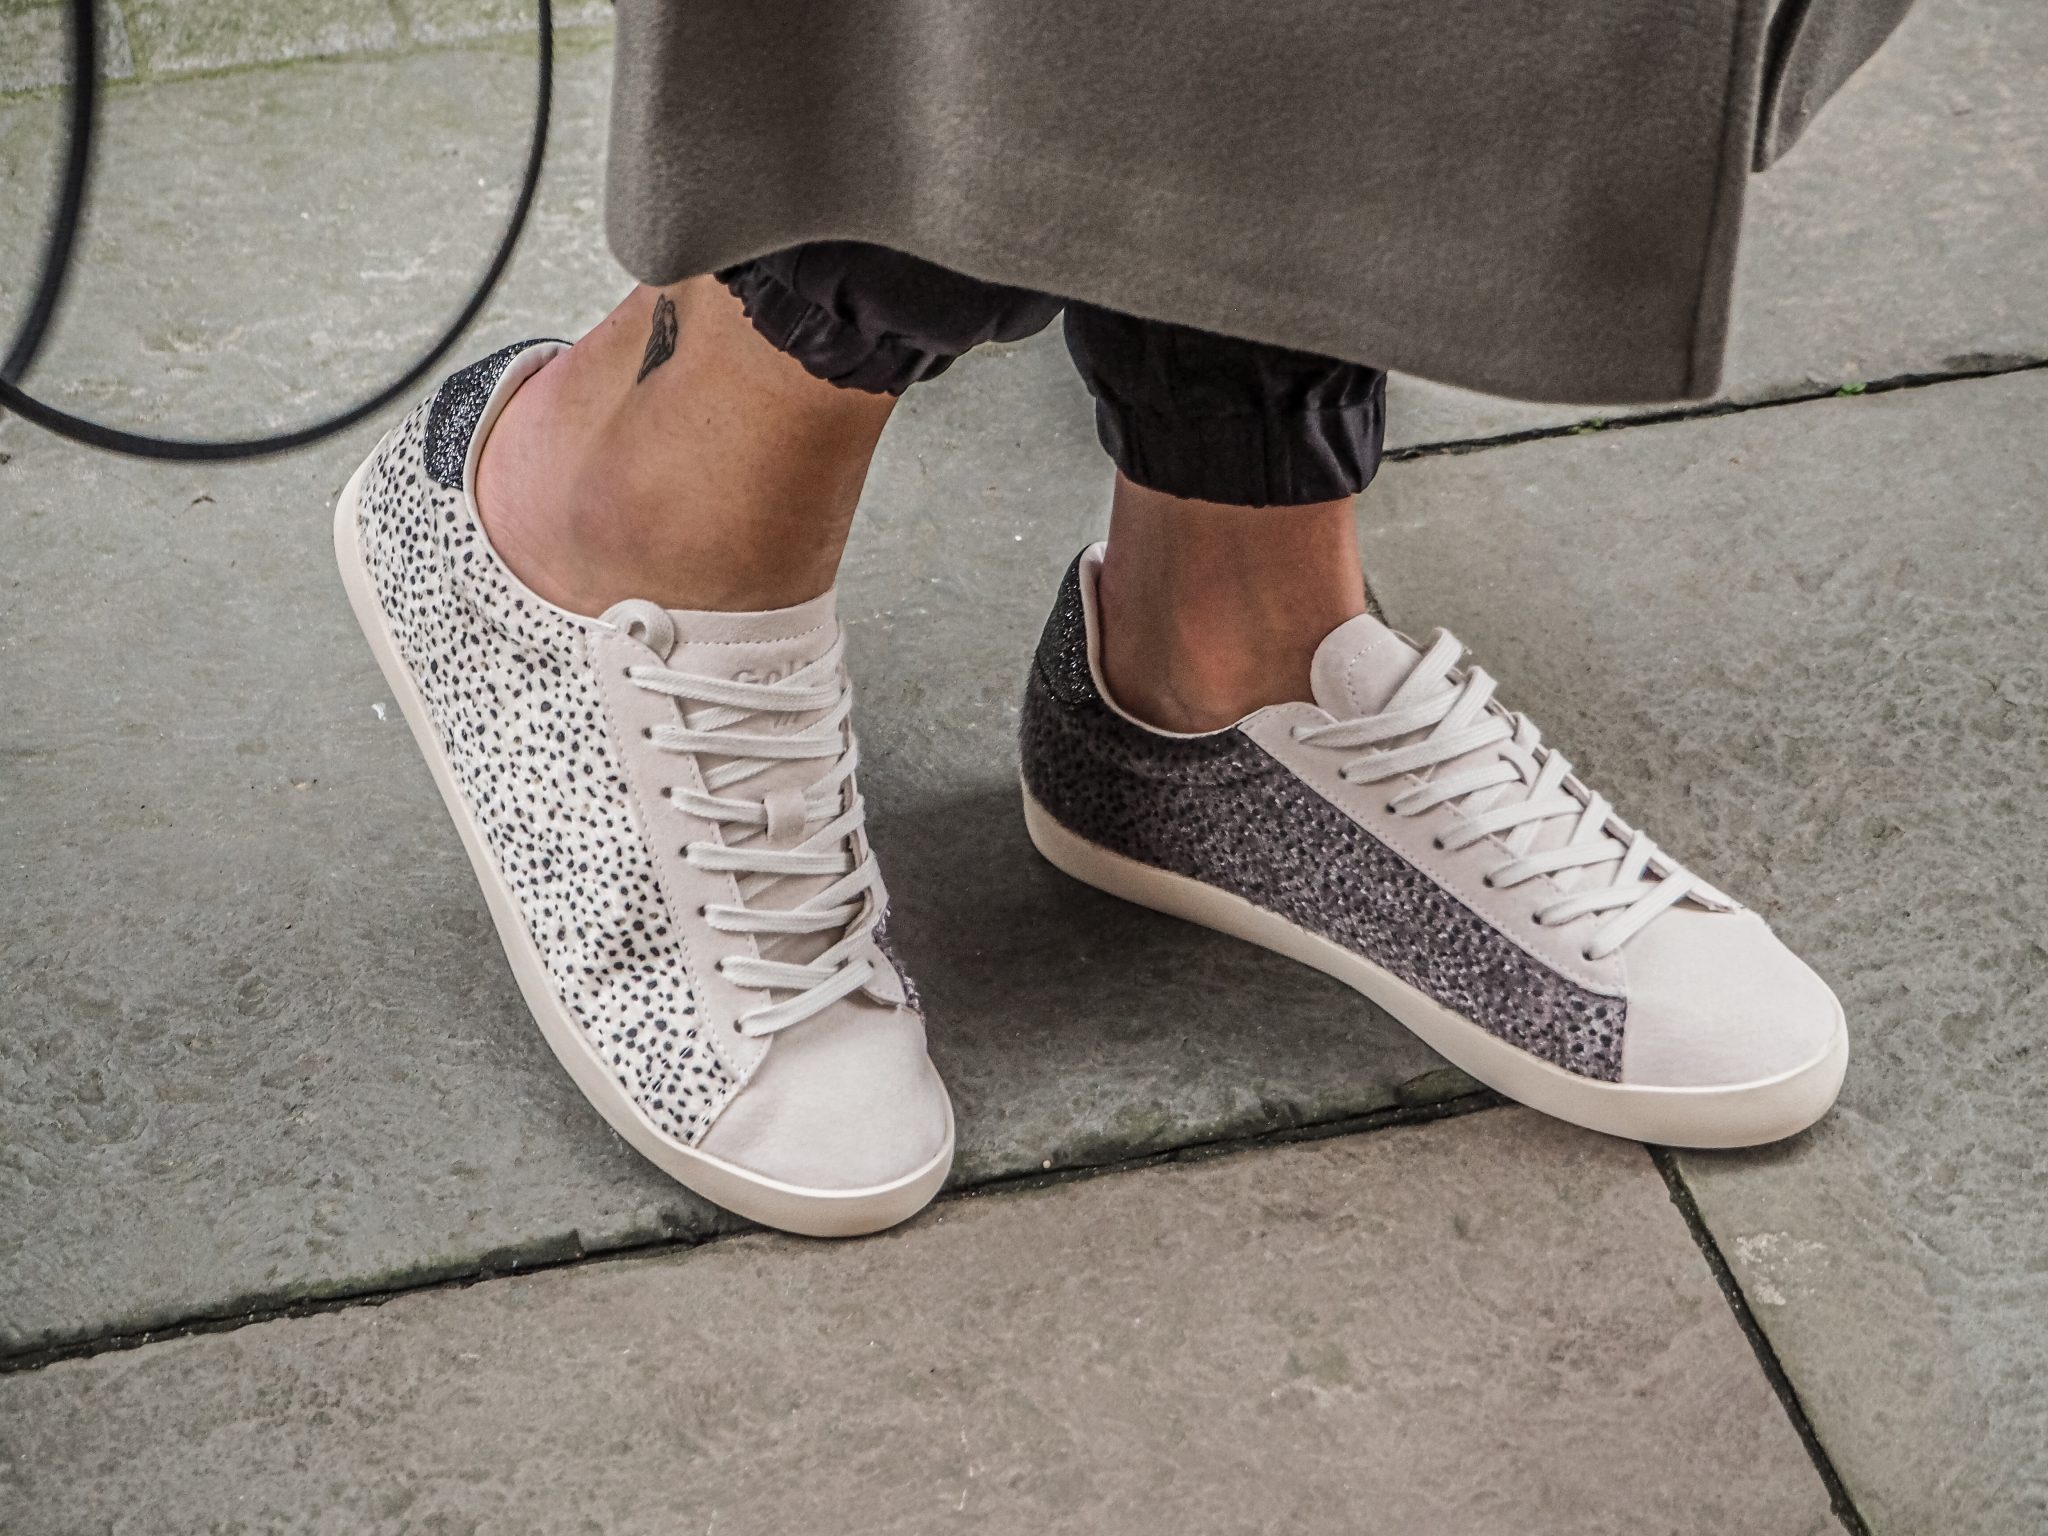 Laura Kate Lucas - Manchester Fashion, Food and Lifestyle Blogger | Gola Womens Nova Savanna Cheetah Trainers